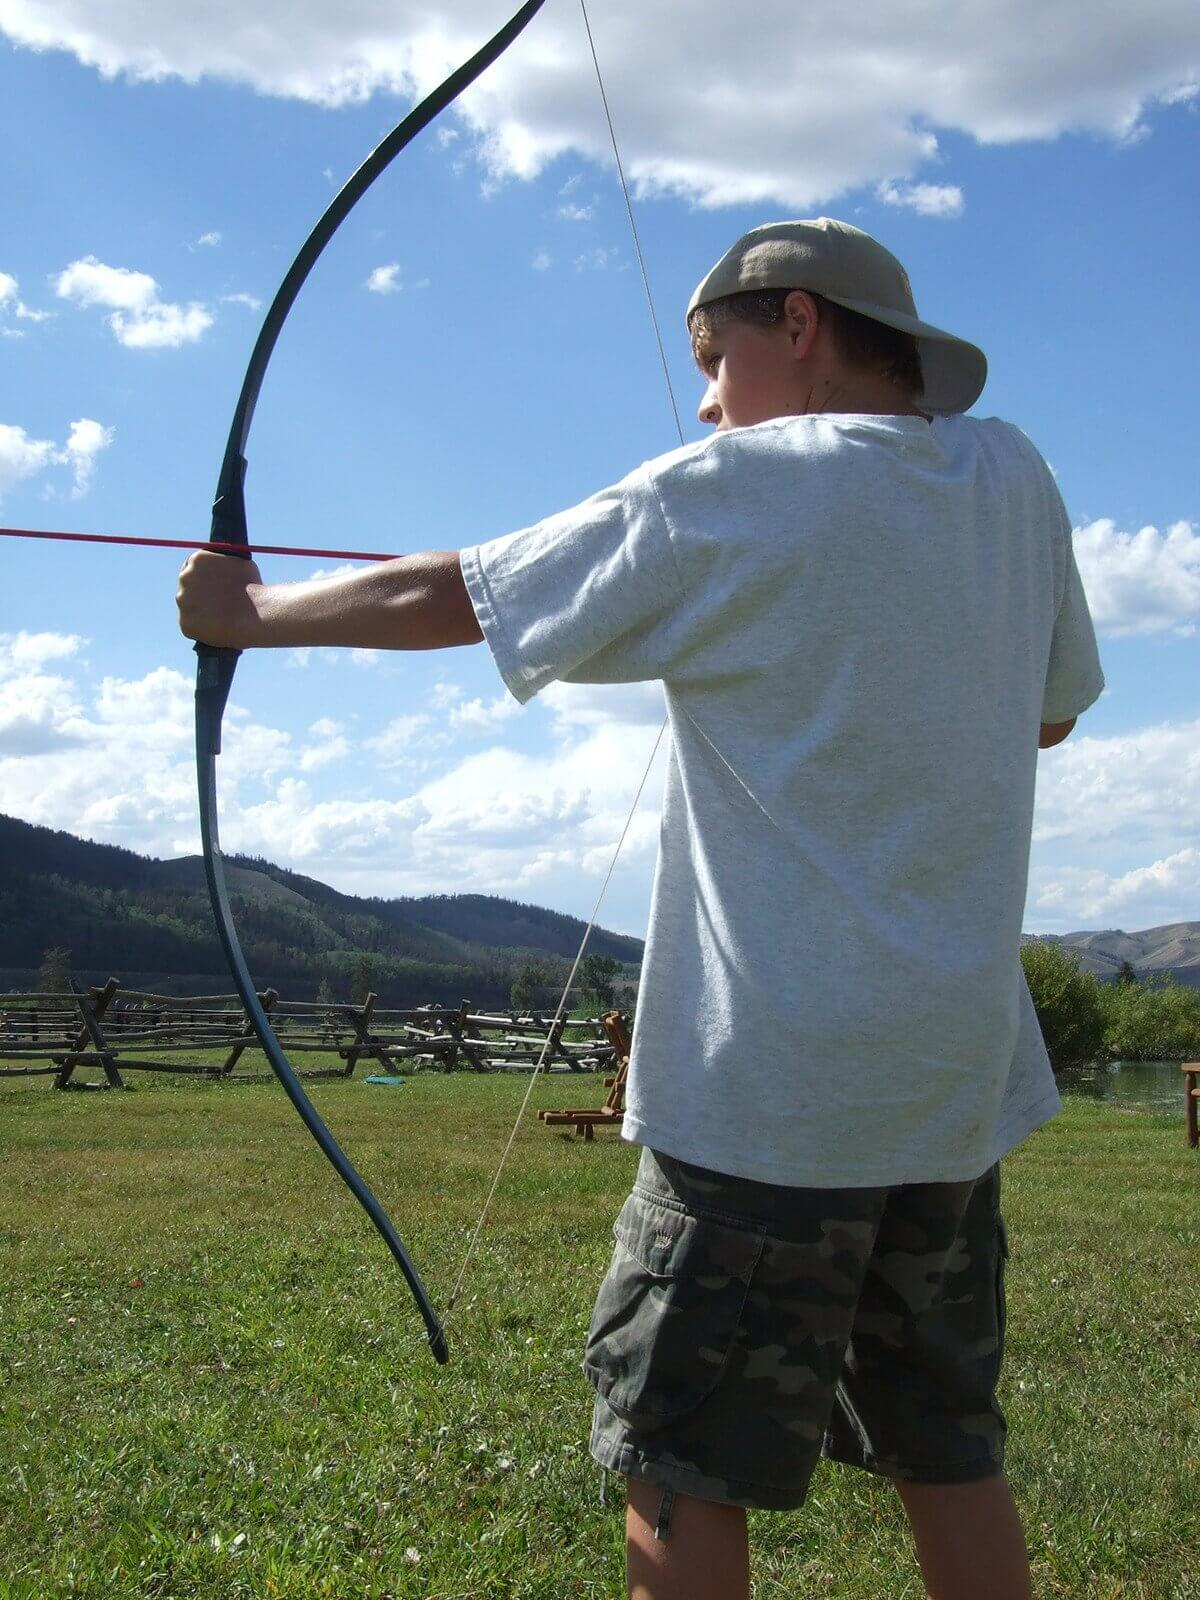 Jackson Hole kids camp activities at our dude ranch include archery